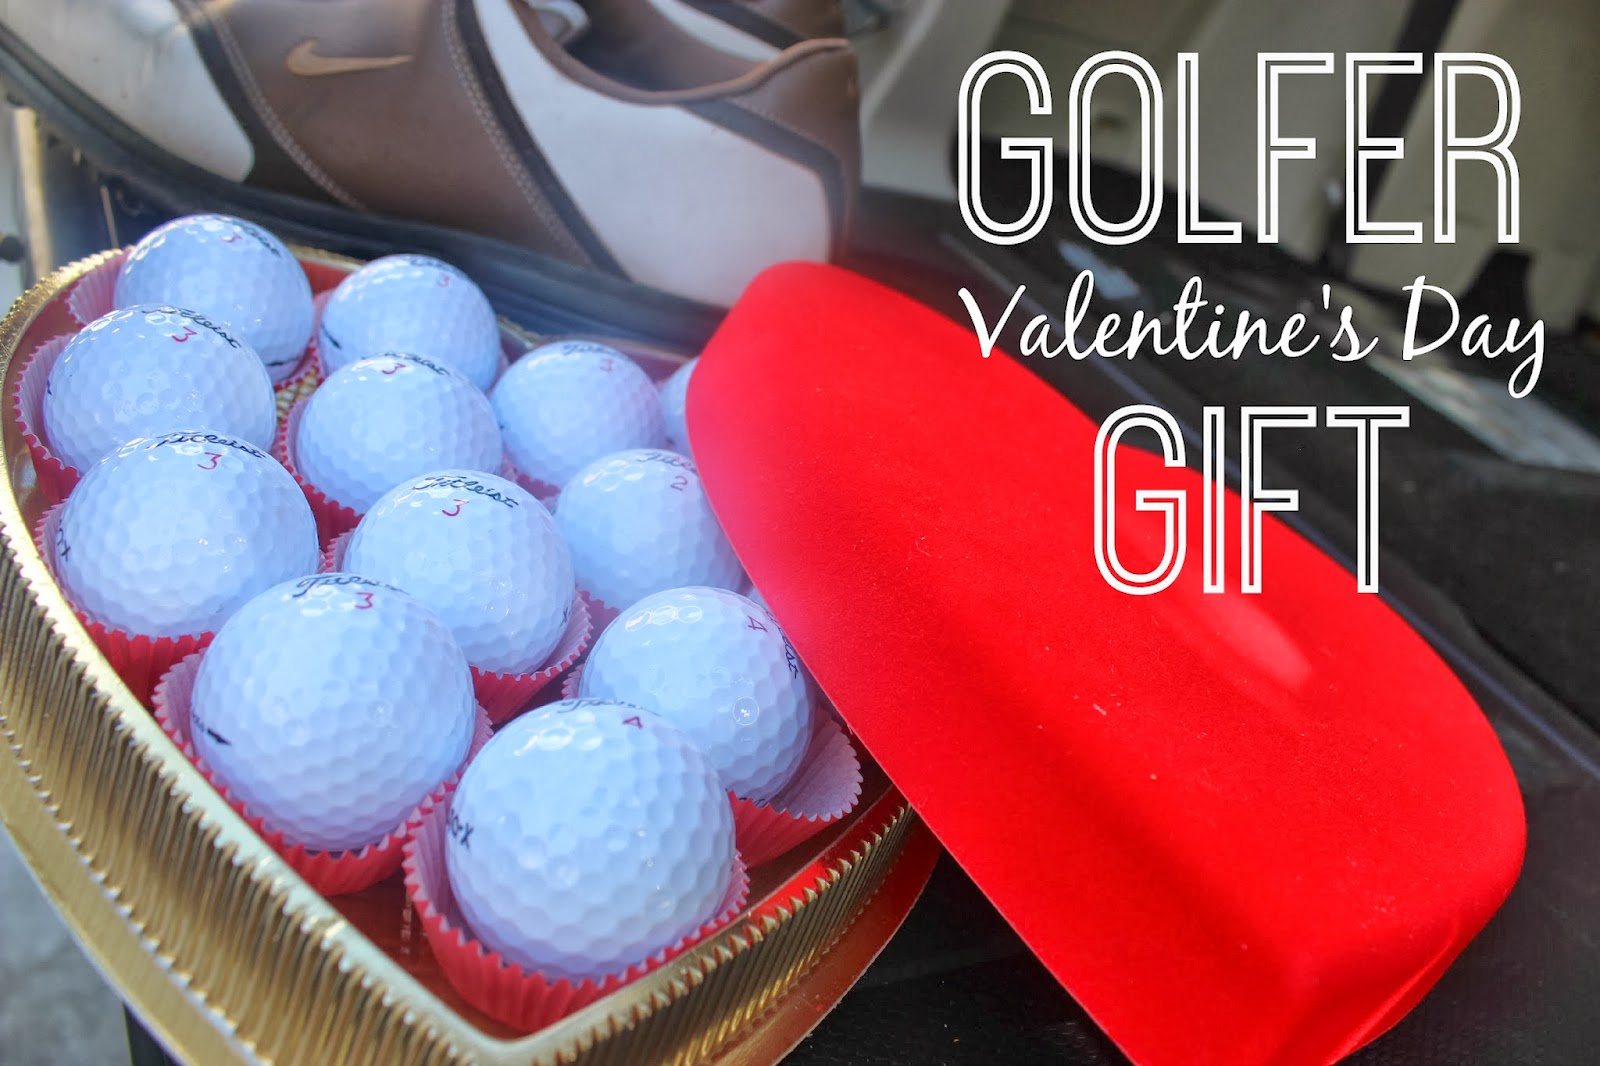 Valentine's Day Gift For My Golfer